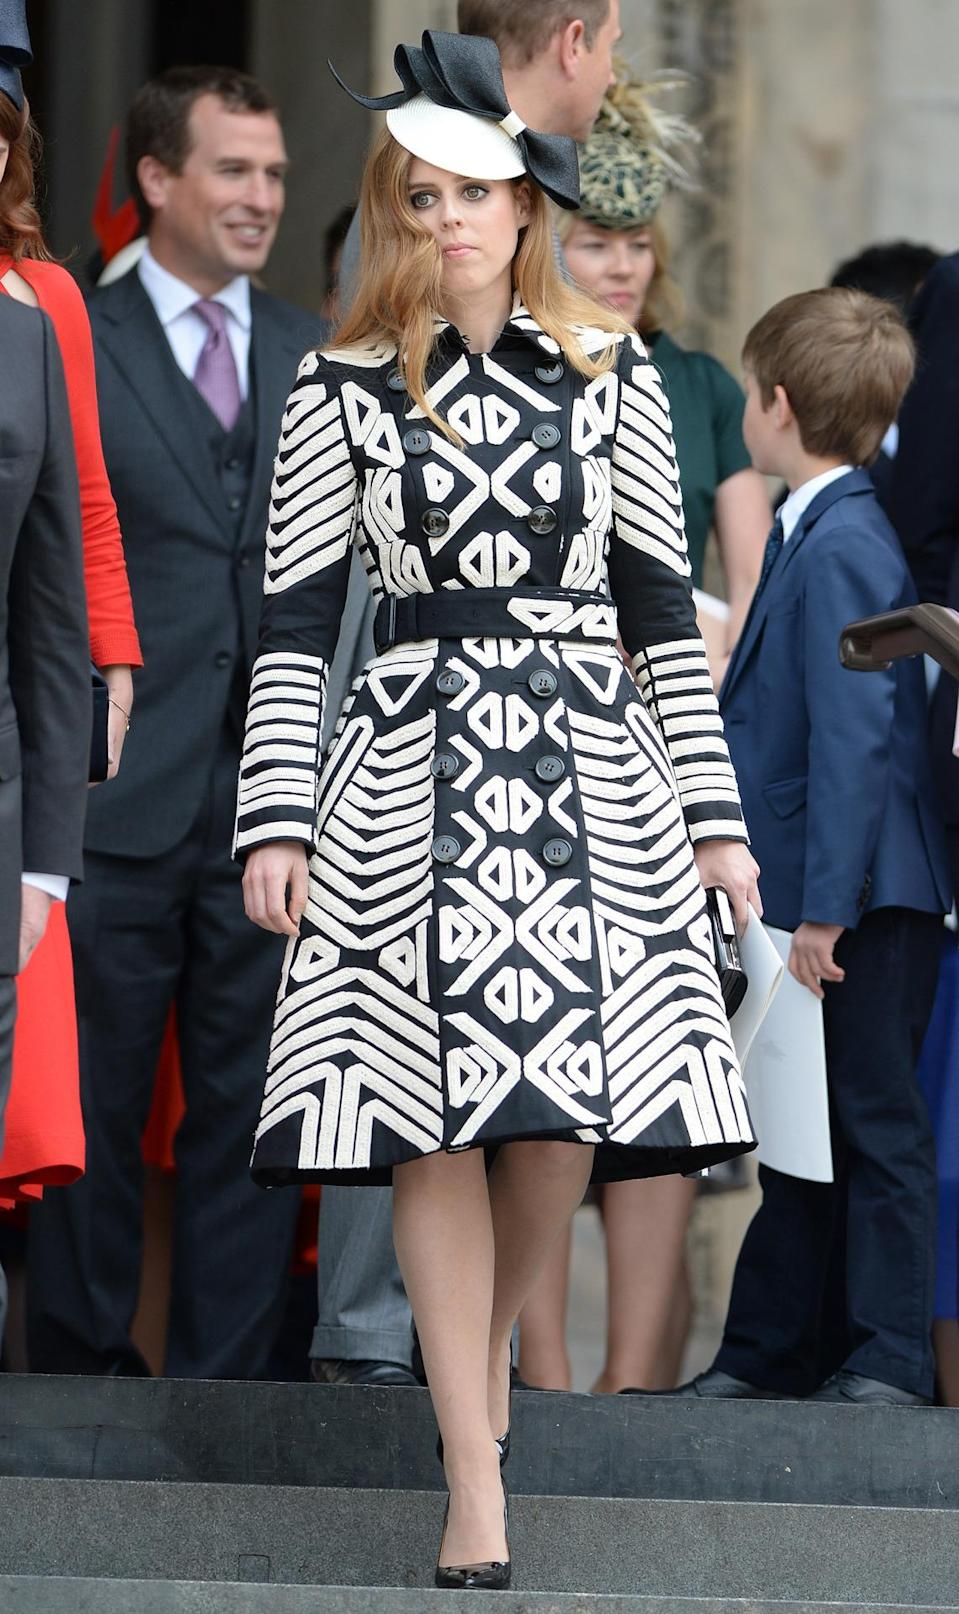 <p>Princess Beatrice is giving the Duchess of Cambridge a run for her money when it comes to chic coat dresses. For a church service for the Queen's 90th birthday, she wore this patterned Burberry number. <i>(Photo by James Whatling)</i></p>